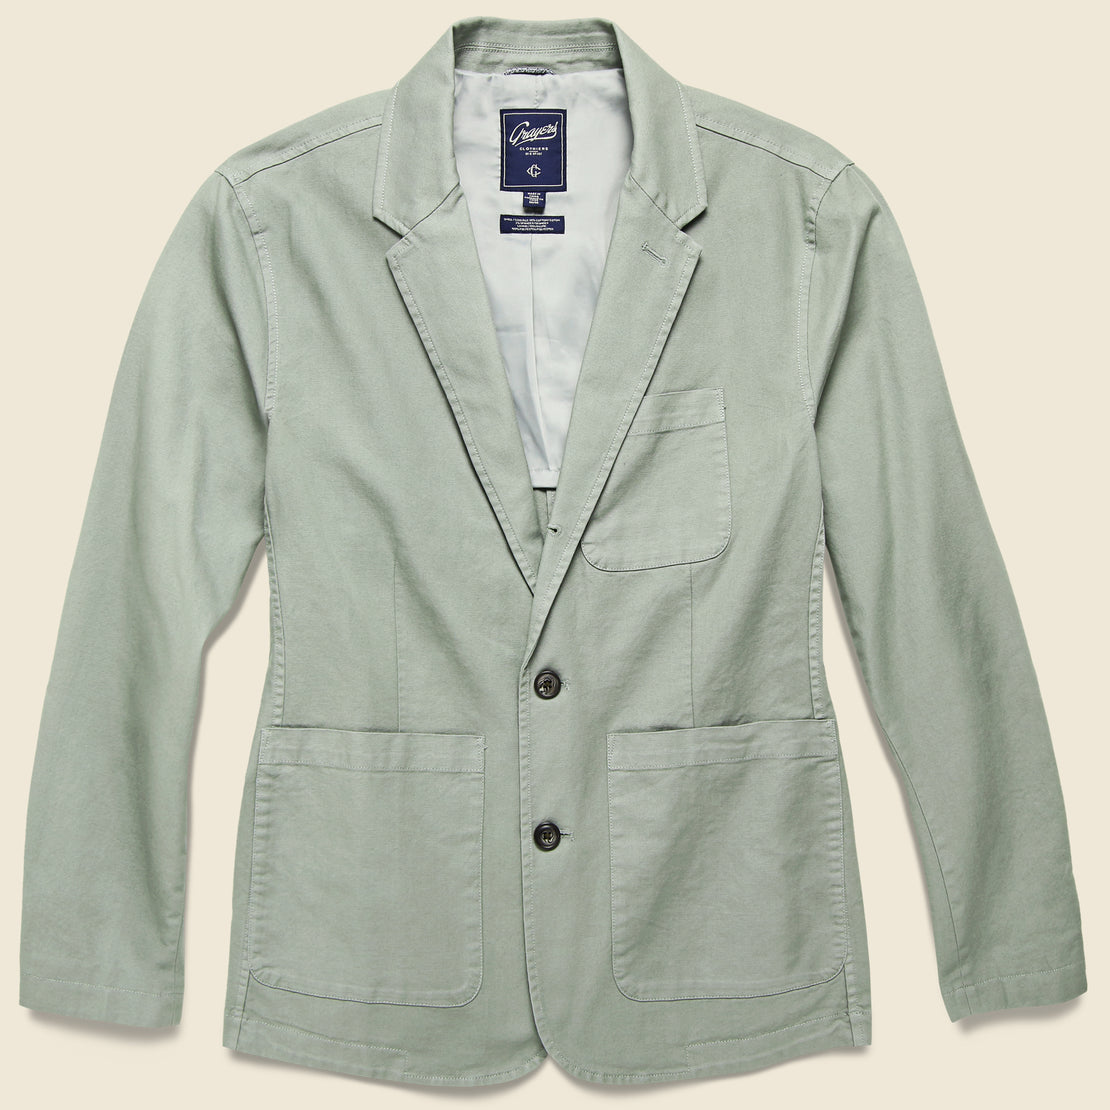 Grayers Newport 3 Button Blazer - Dusty Olive